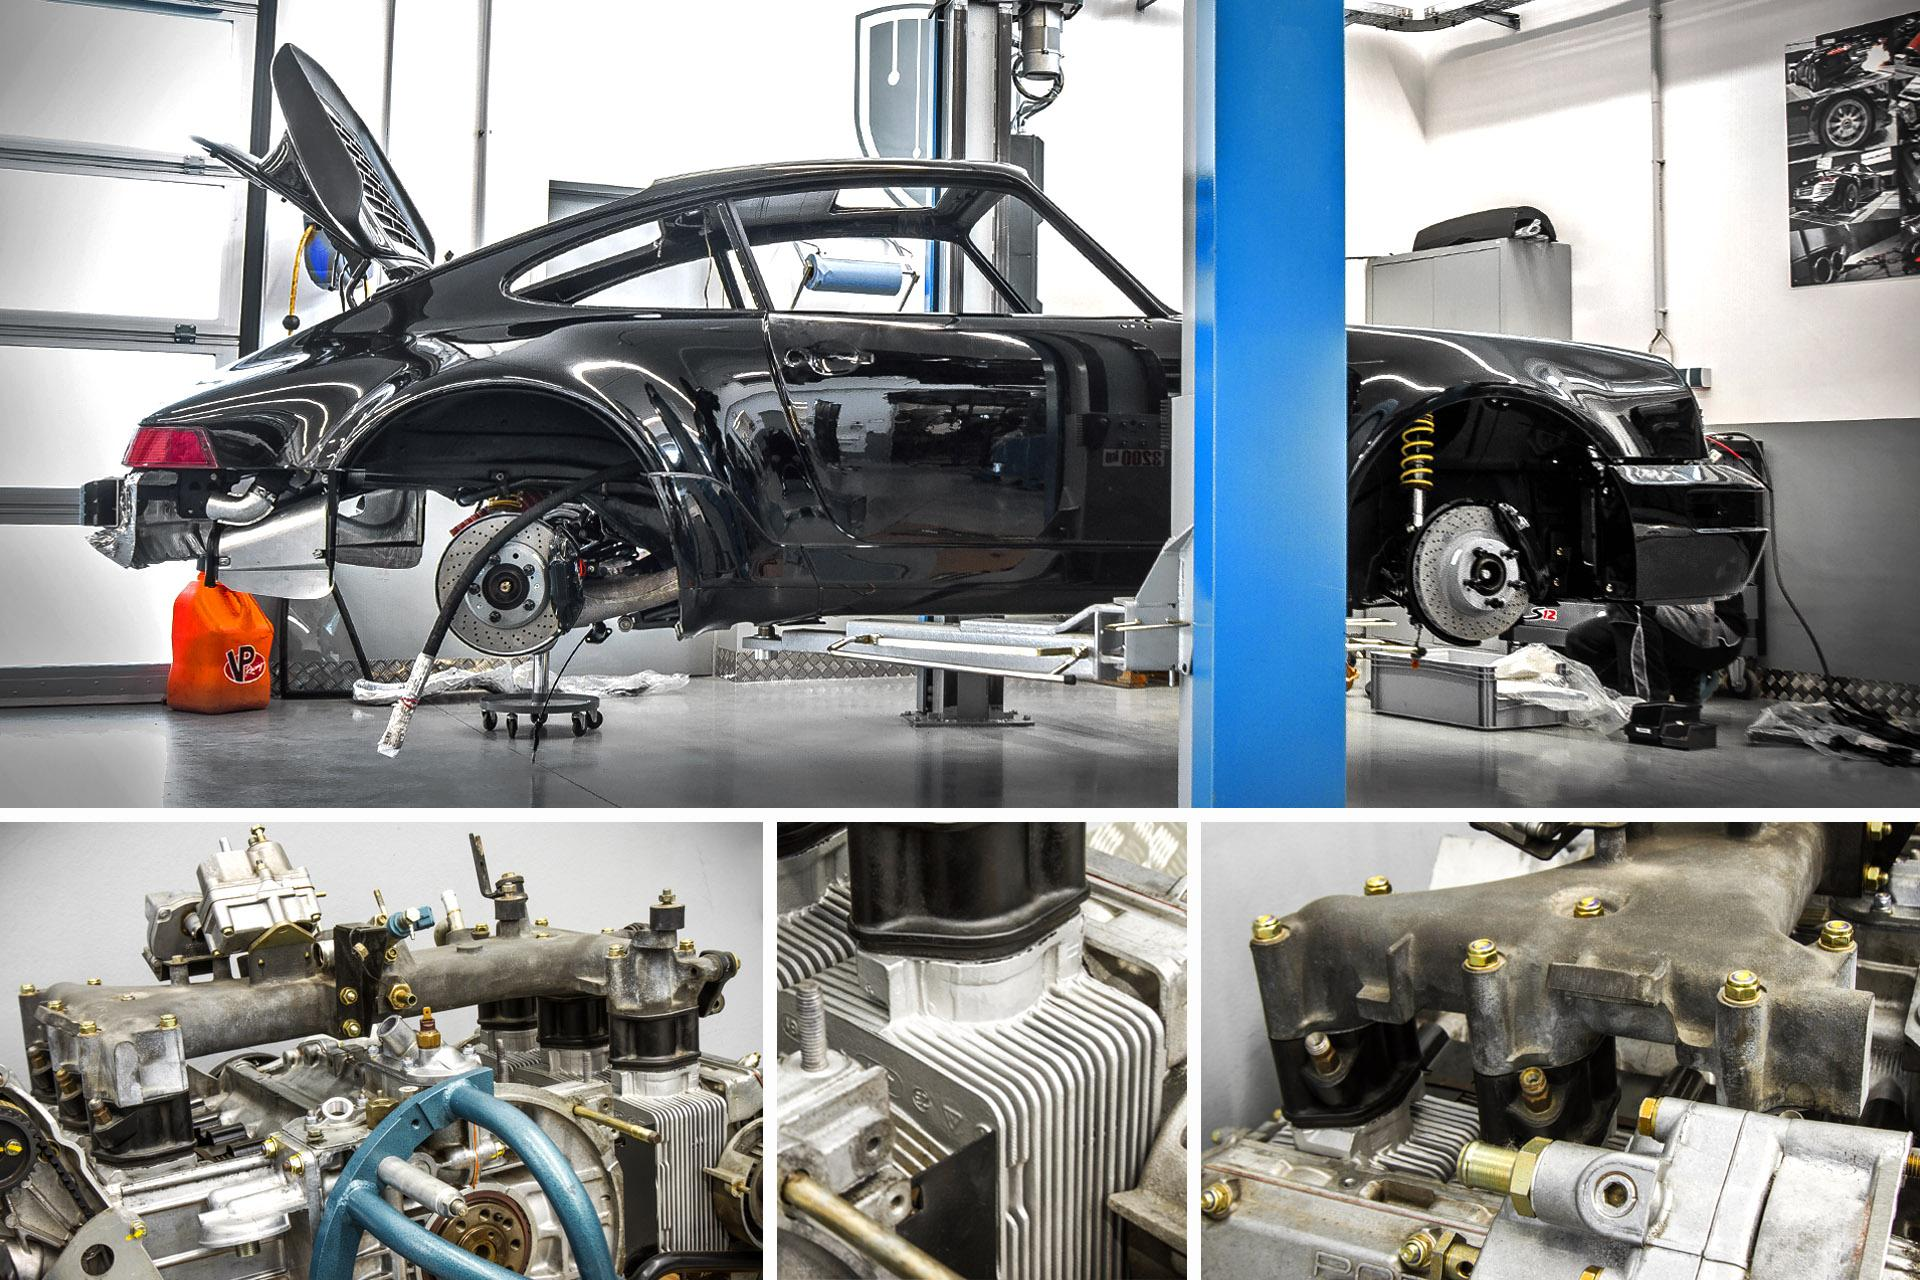 Restauration Porsche 964 Turbo 33 Part 5 Vehicle Wiring Harness Repair A Short Update On The Work Steps Of Past Weeks In Addition To Lighting Tank Fuel Lines And Many Small Parts First Body